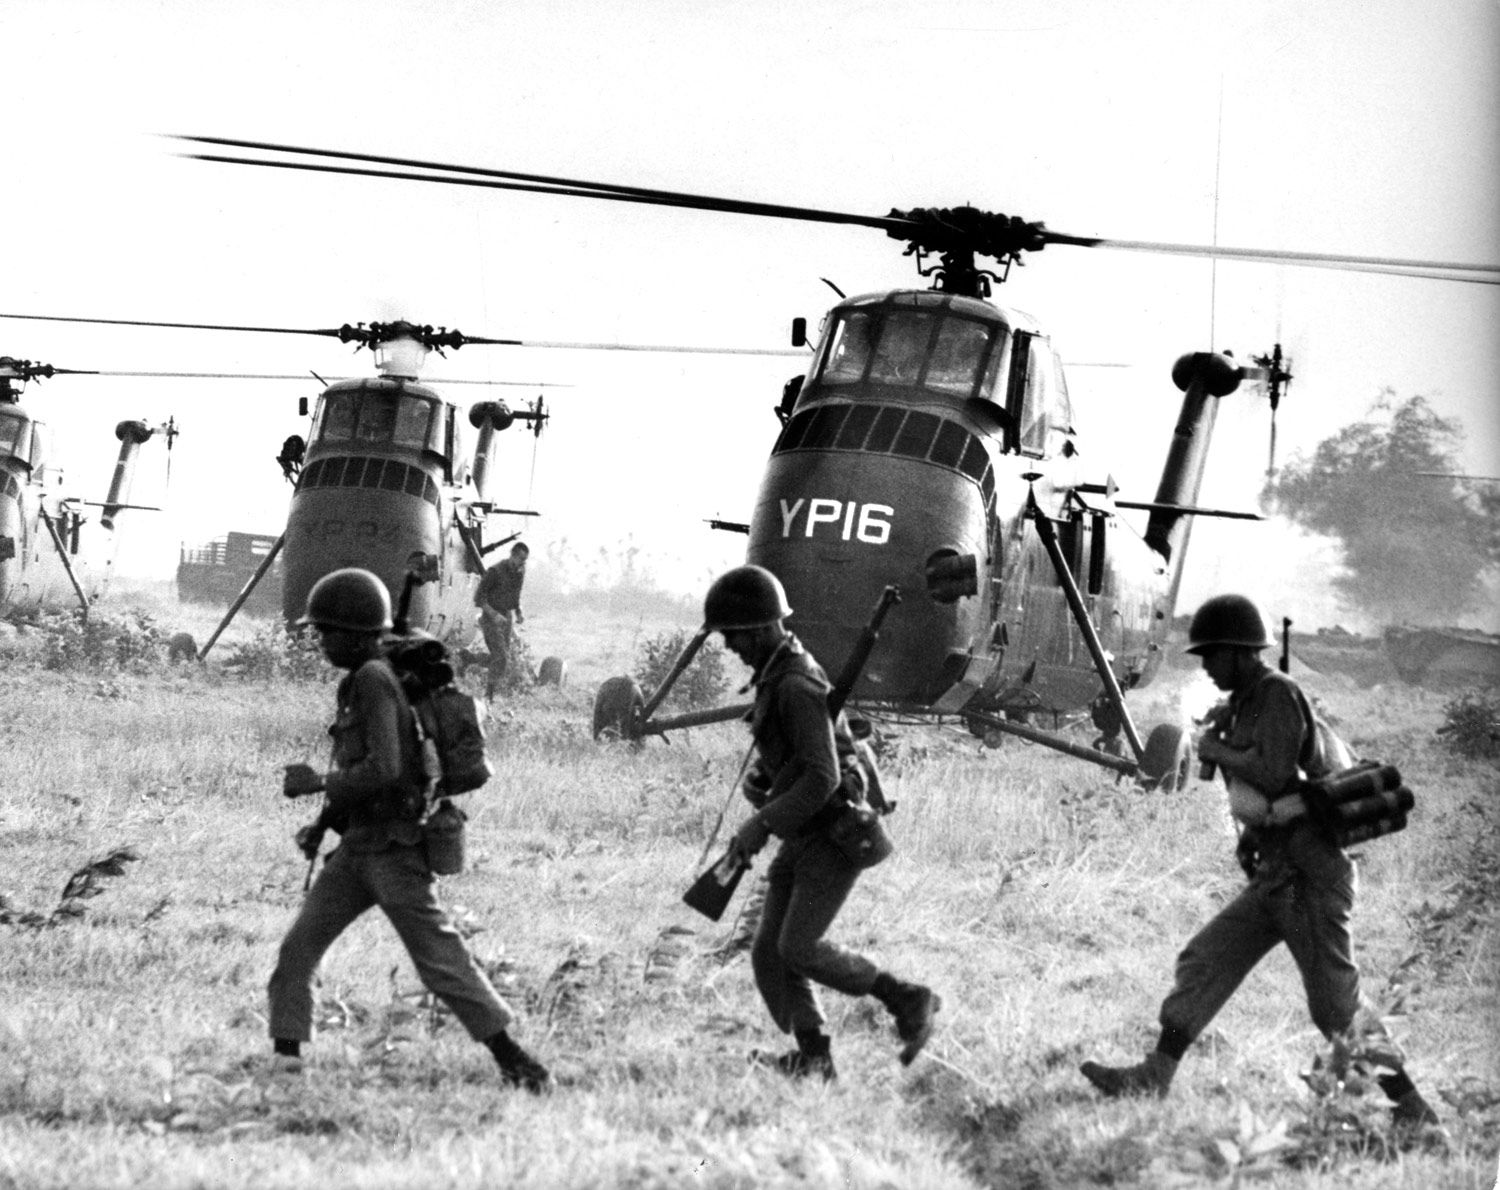 life and death in vietnam one ride yankee papa prime life < strong> a larry burrows photograph from vietnam not published in the original yankee papa 13 life photo essay